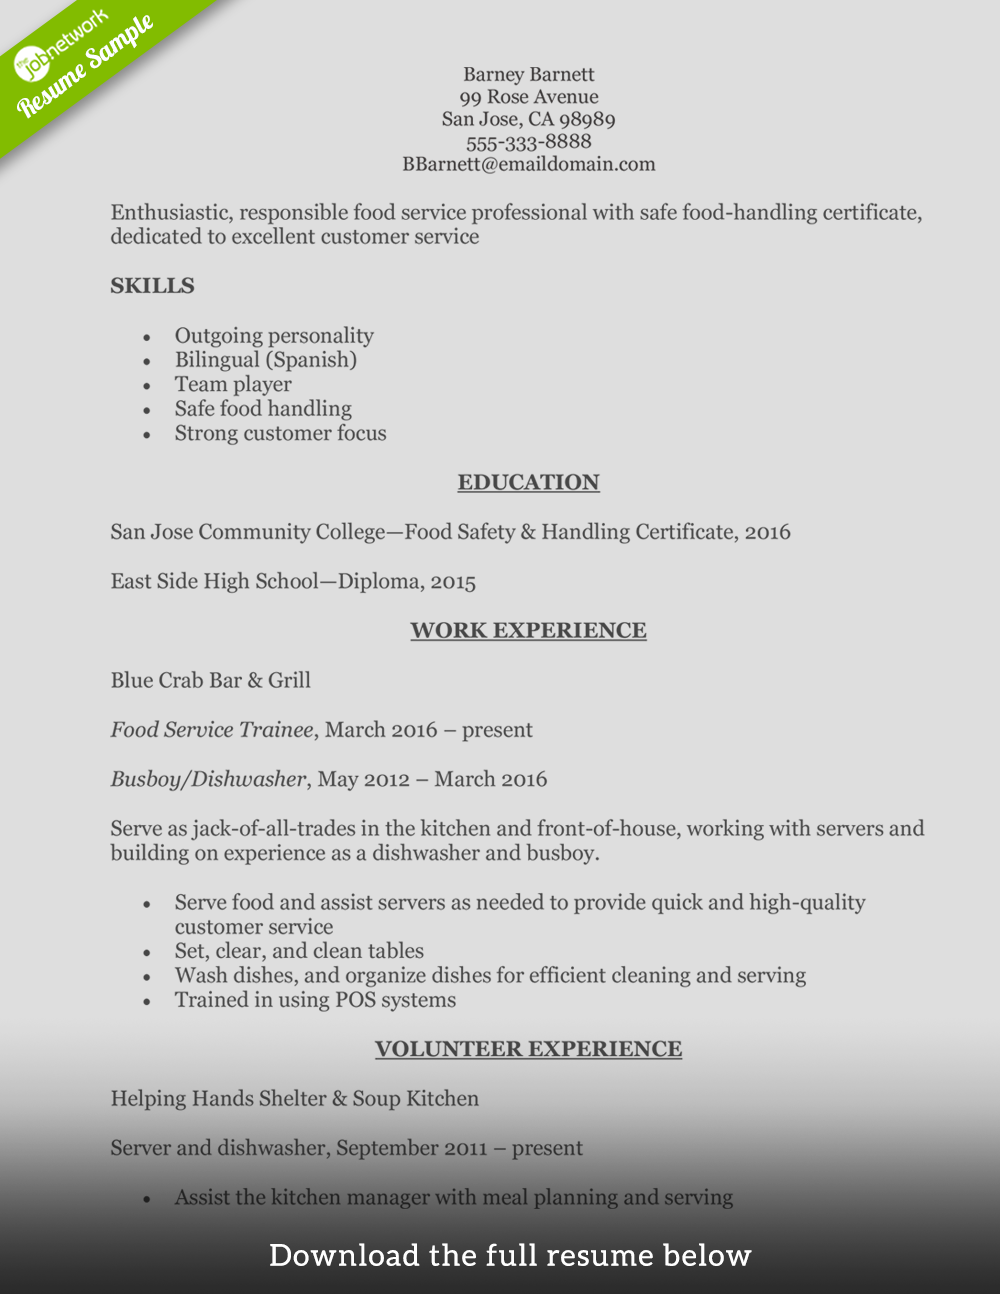 How to write a perfect food service resume examples included food service resume entry level altavistaventures Images